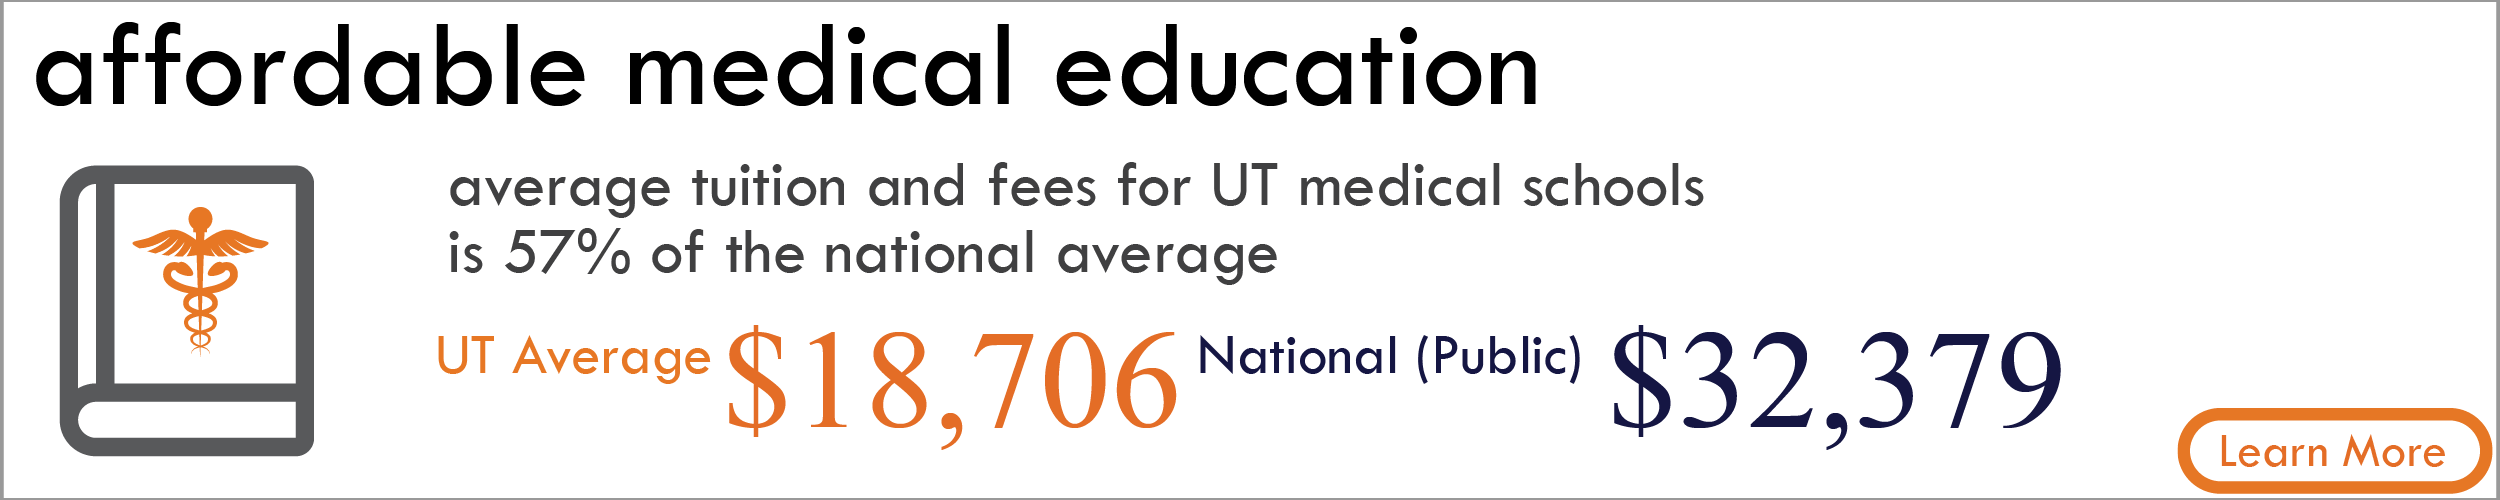 Affordable Medical Education. Average tuition and fees for UT medical schools is 57% of the national average; UT average cost is $18,706; National Public is $32,379. Learn more.